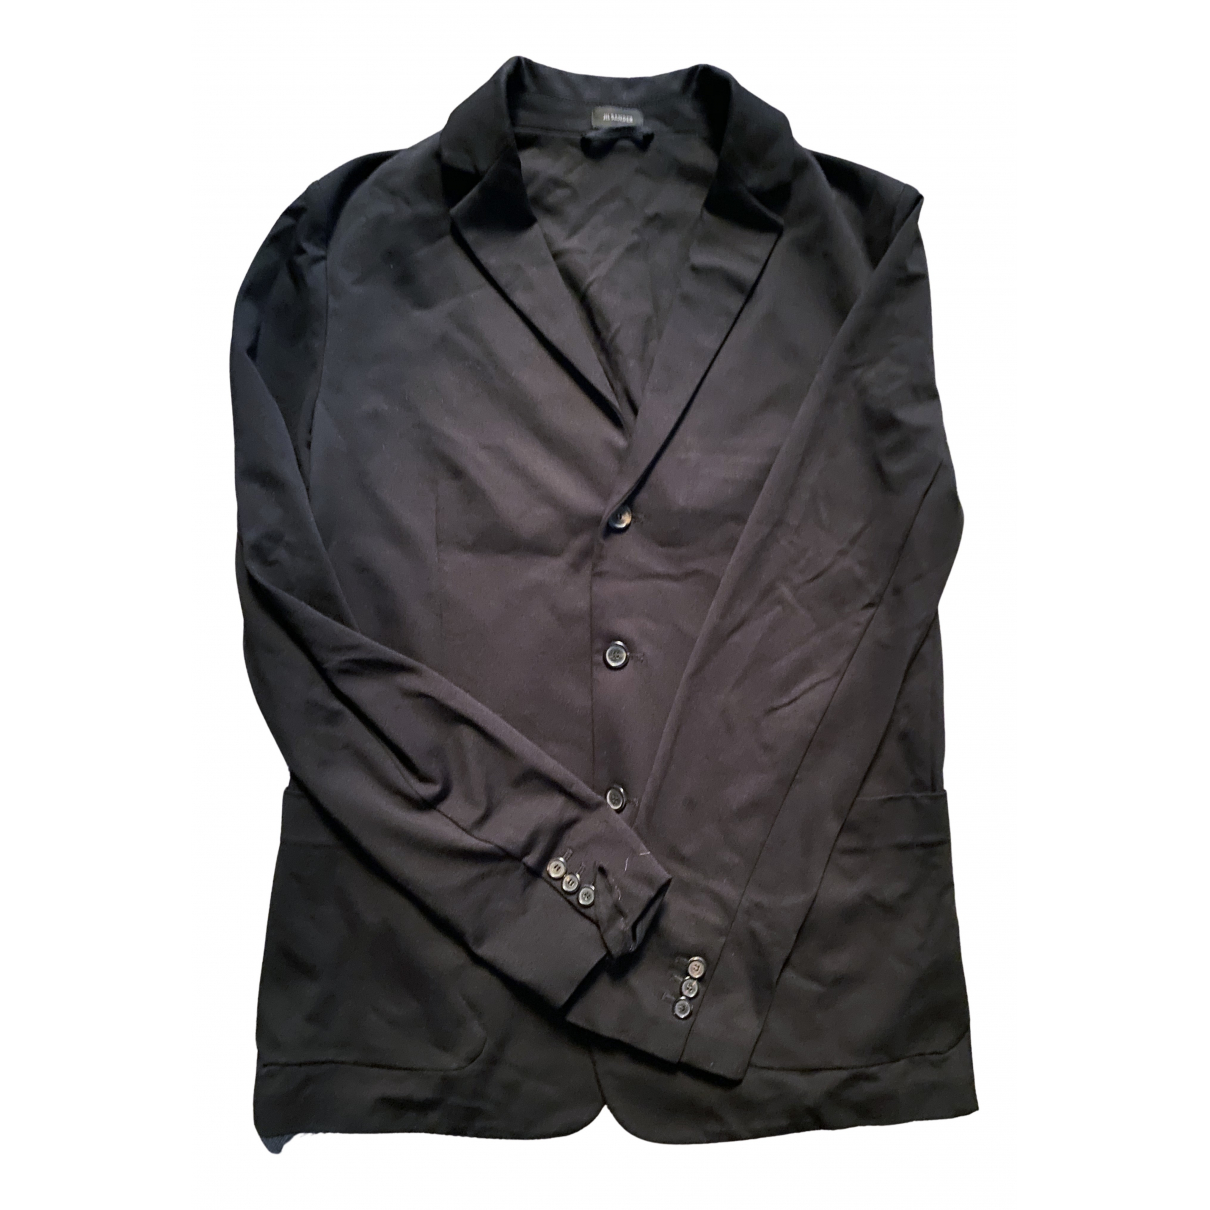 Jil Sander N Black Cotton jacket  for Men 48 IT